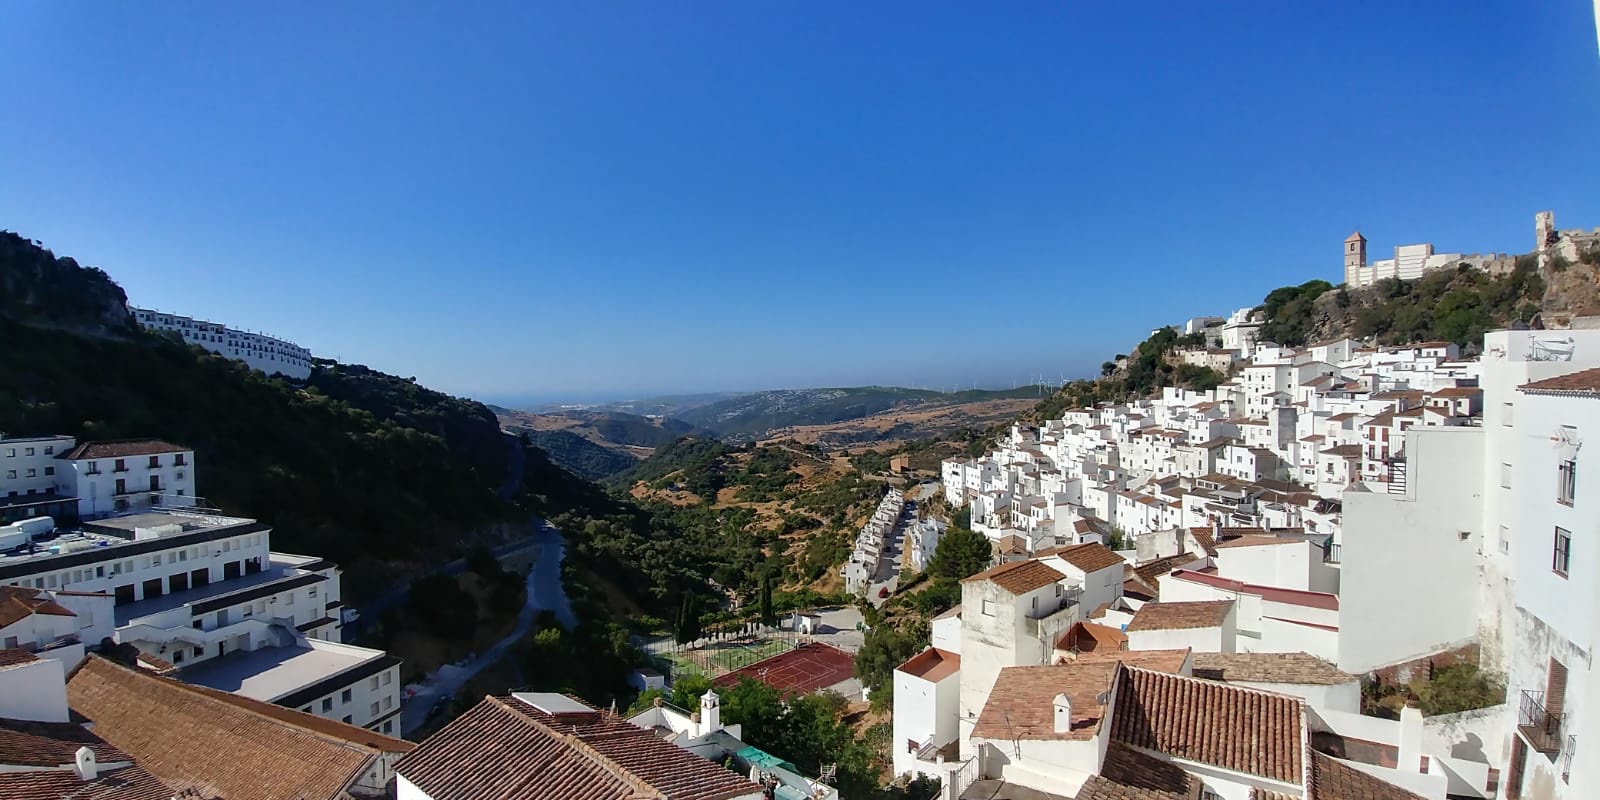 Casares Besides the Obvious